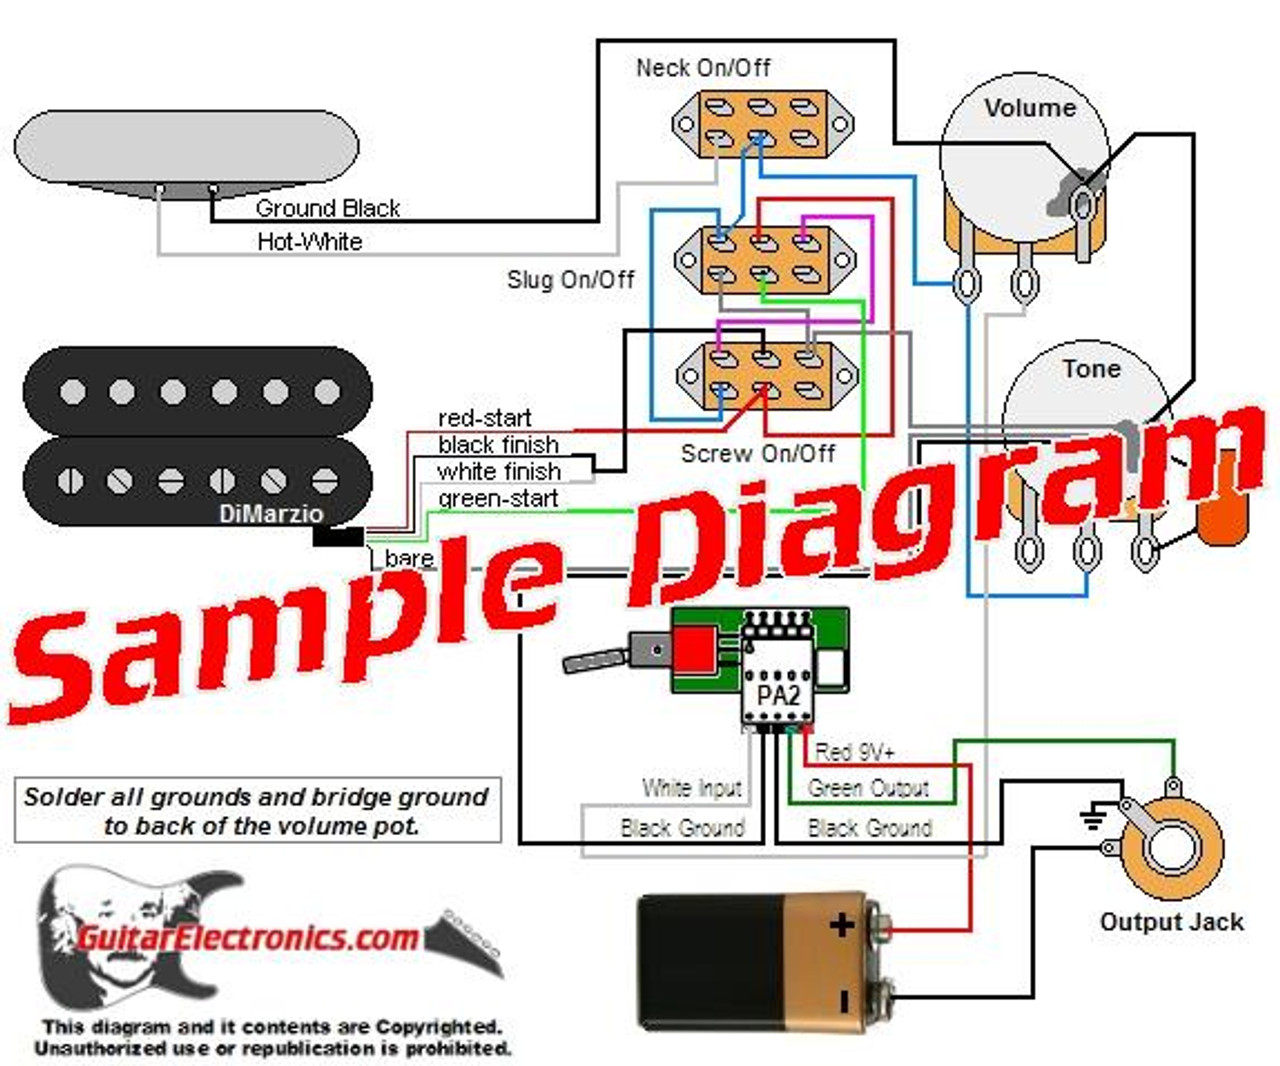 2 Pickup Custom Designed Guitar Wiring Diagrams | Guitar Wiring Diagrams Dual Humbucker |  | Guitar Electronics